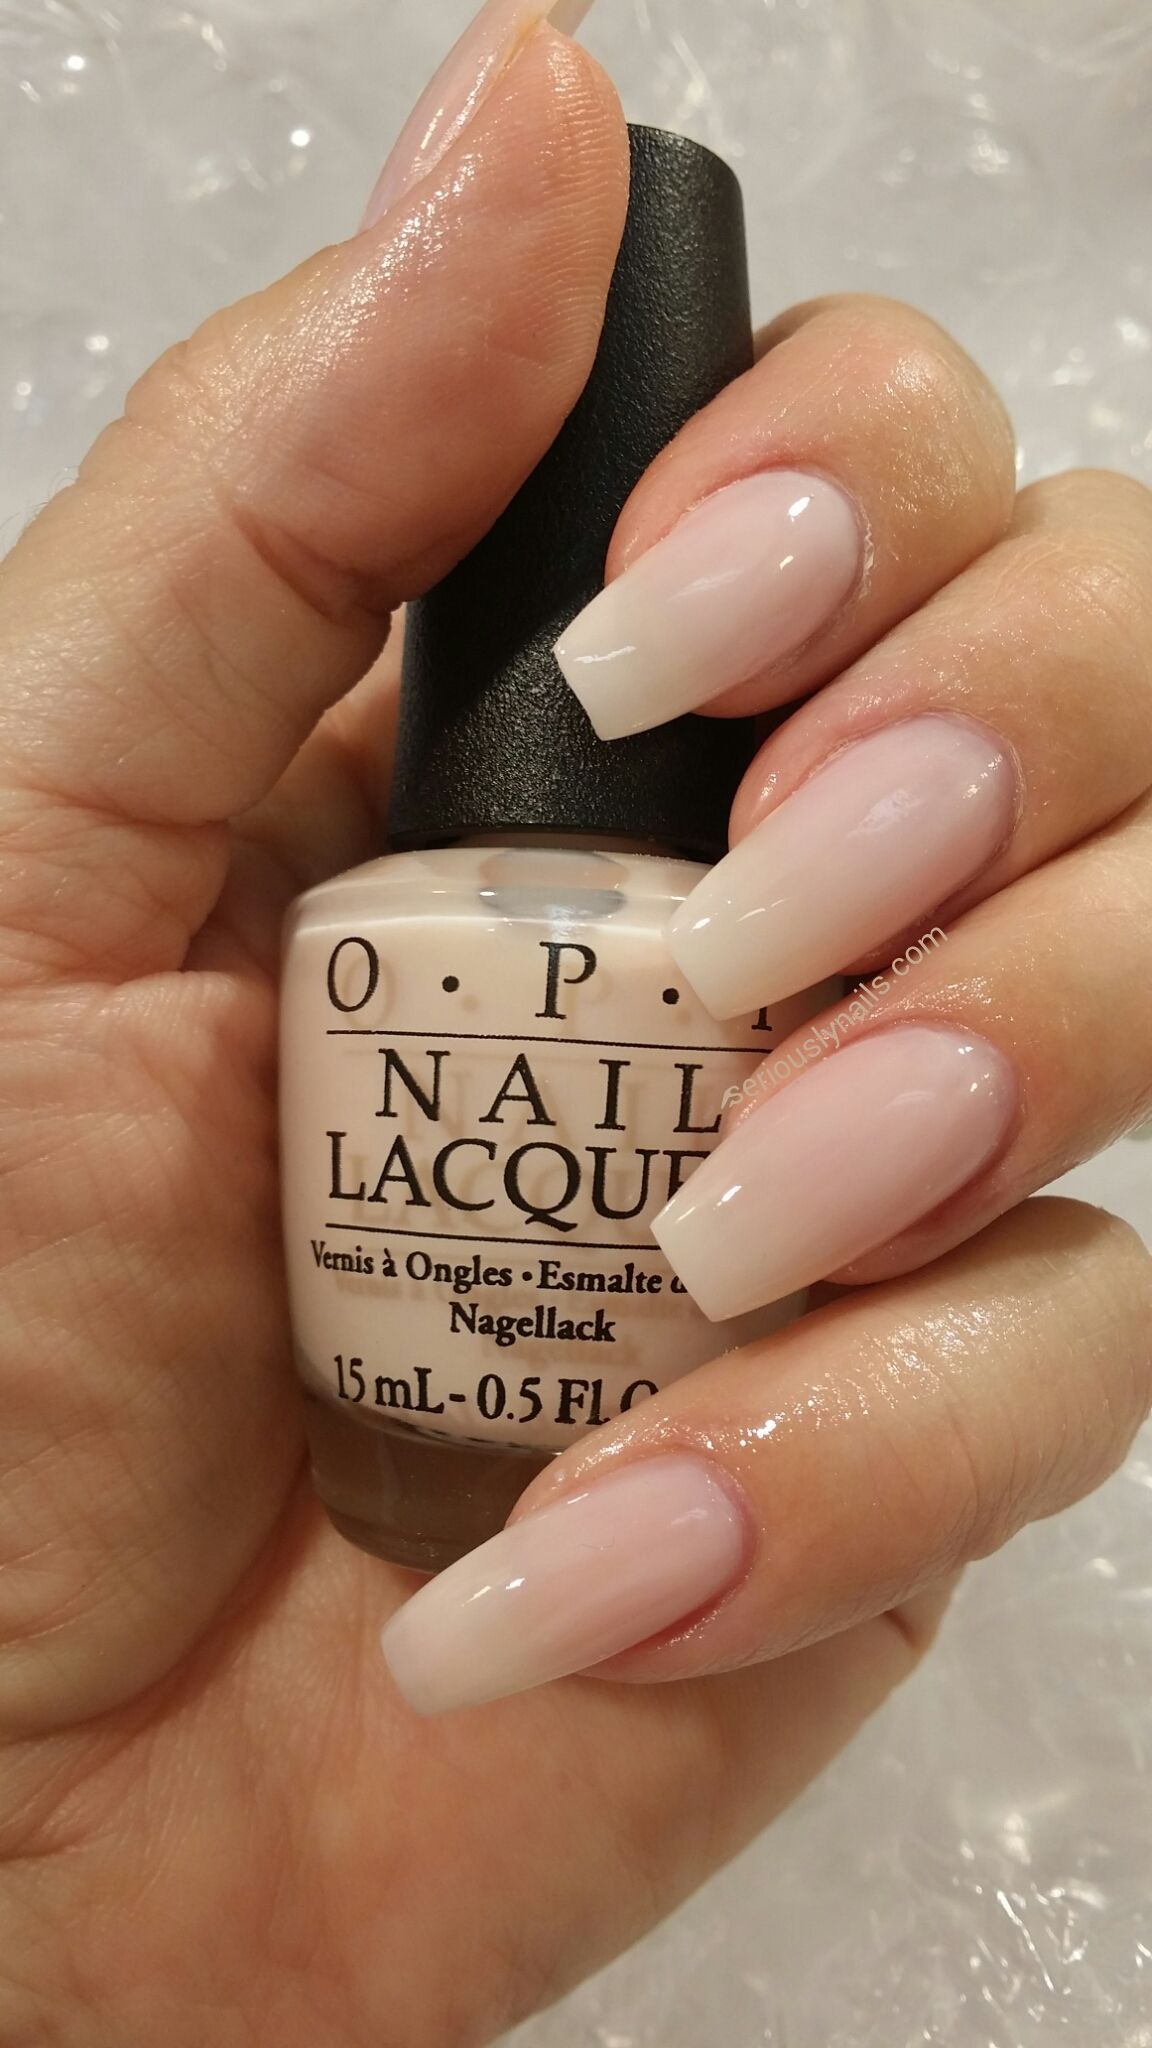 Soft Shades from OPI